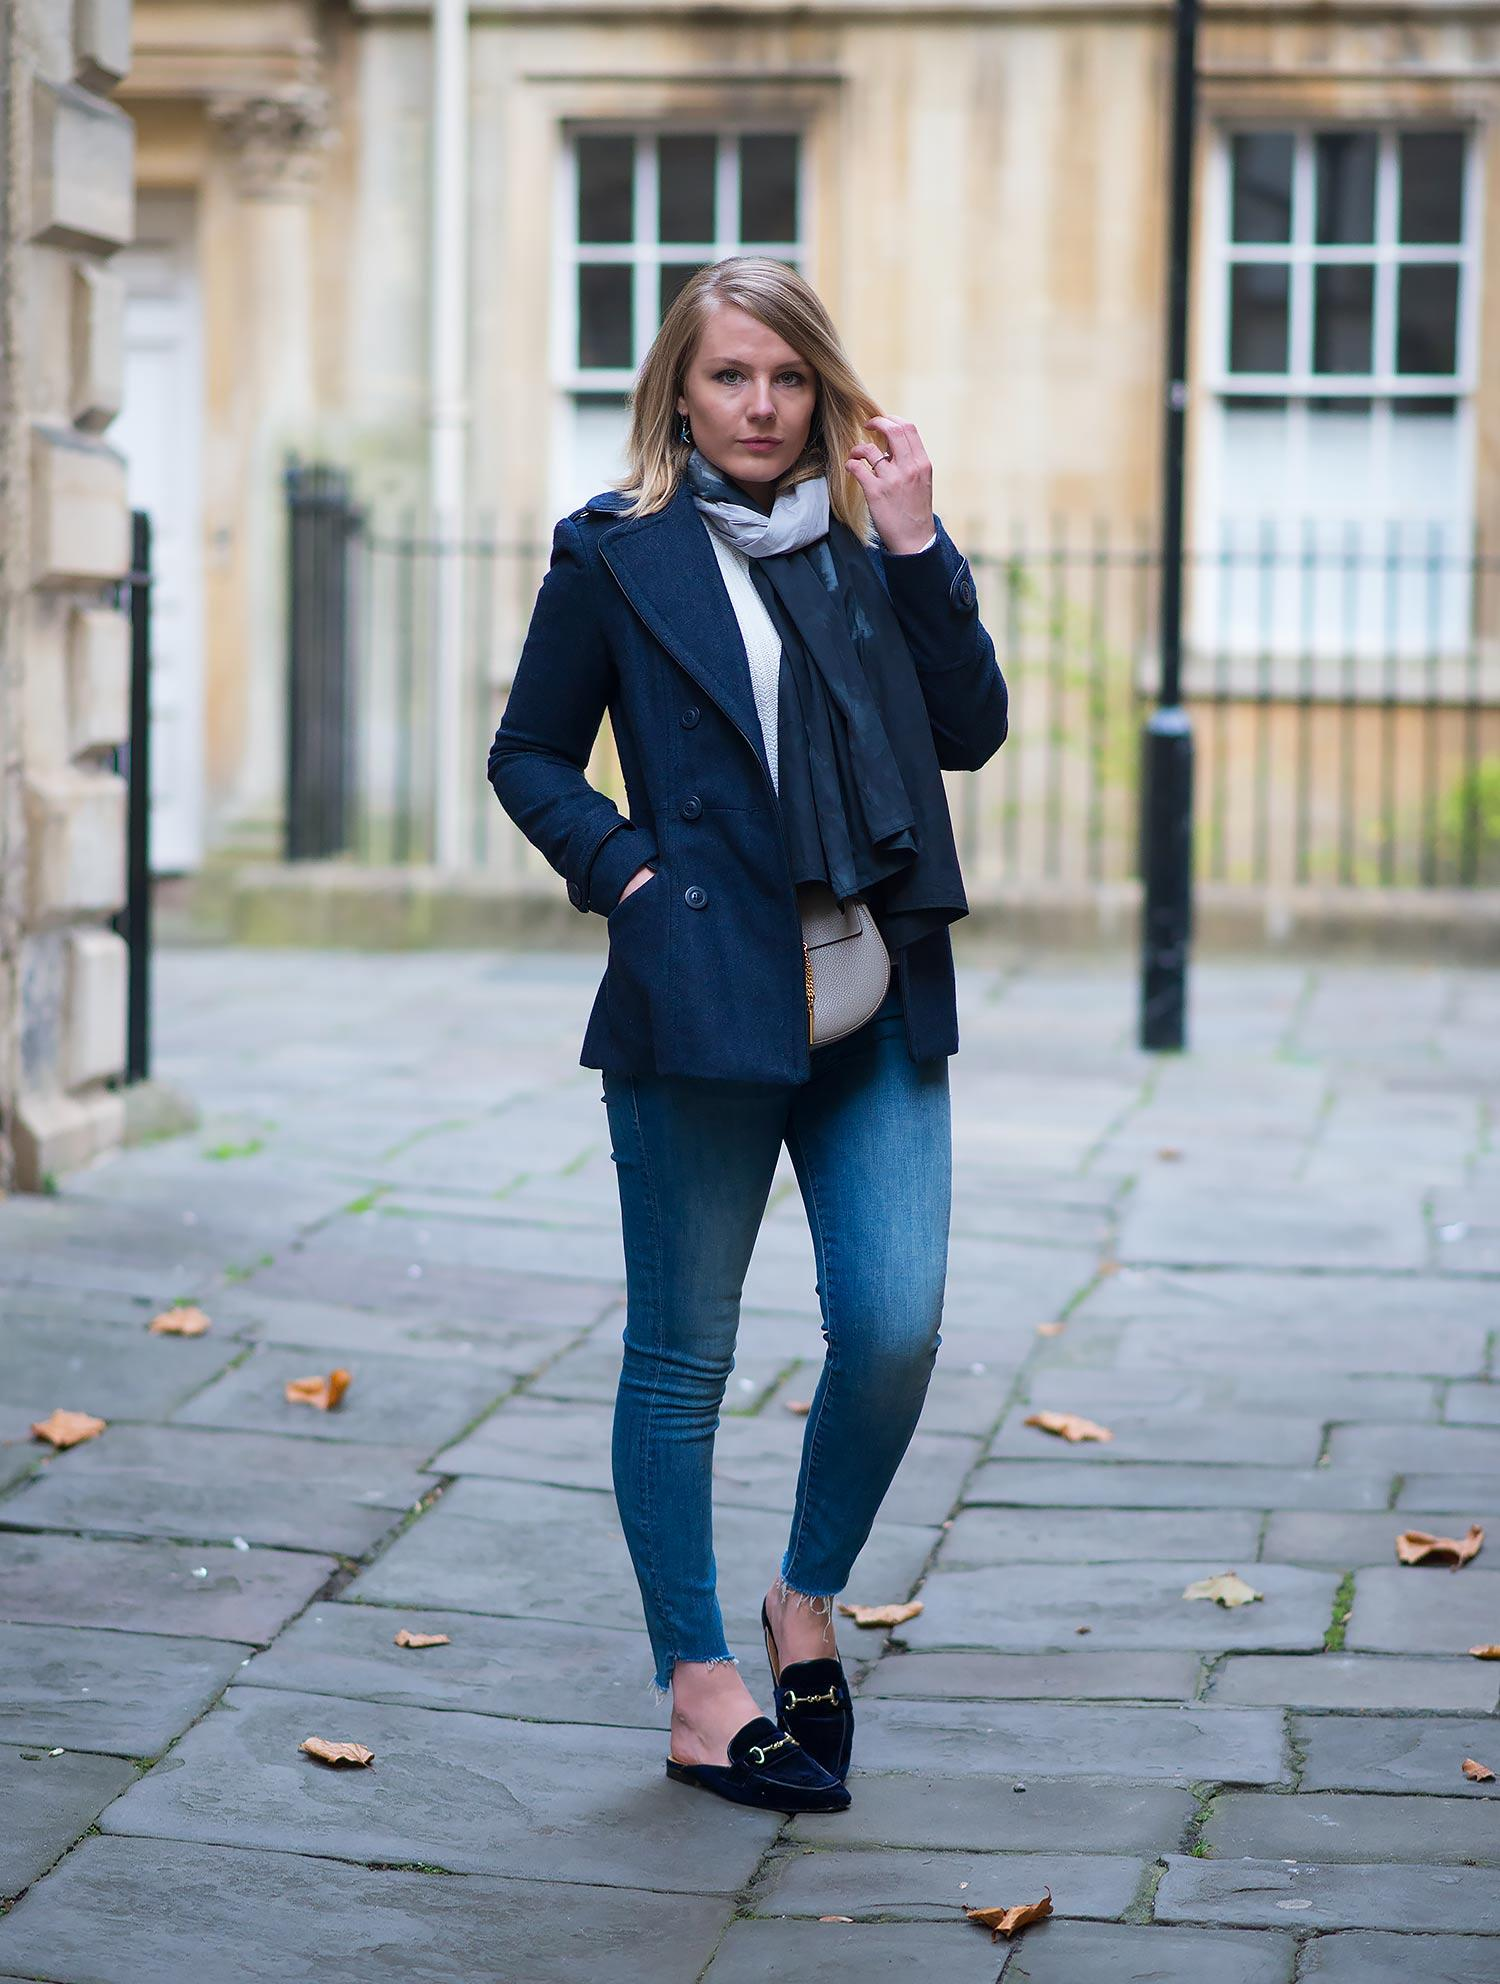 lorna-burford-uk-fashion-blogger-jeans-navy-outfit